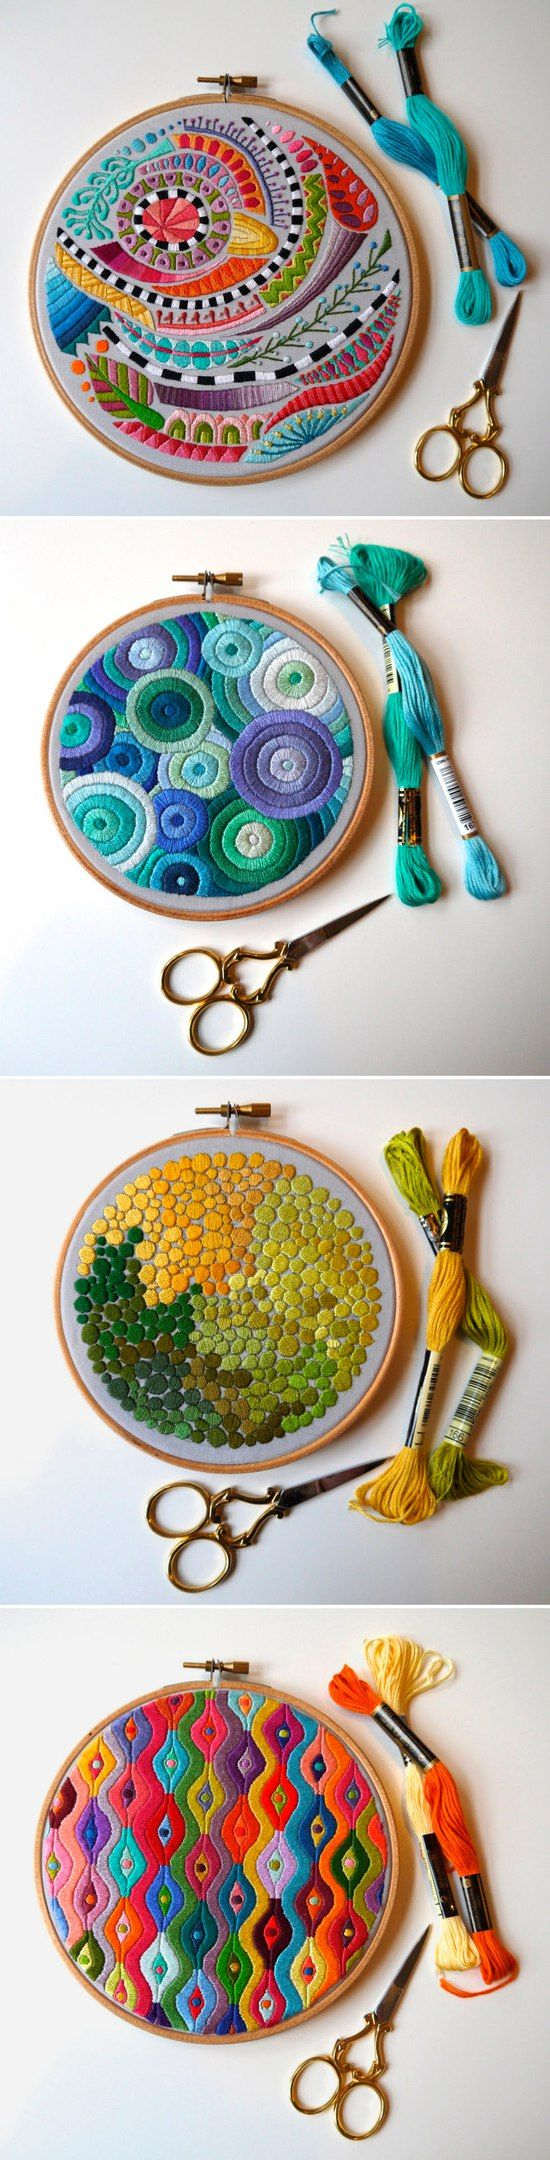 Amazing Embroidery By Corinne Sleight Artsy Fartsy Pinterest